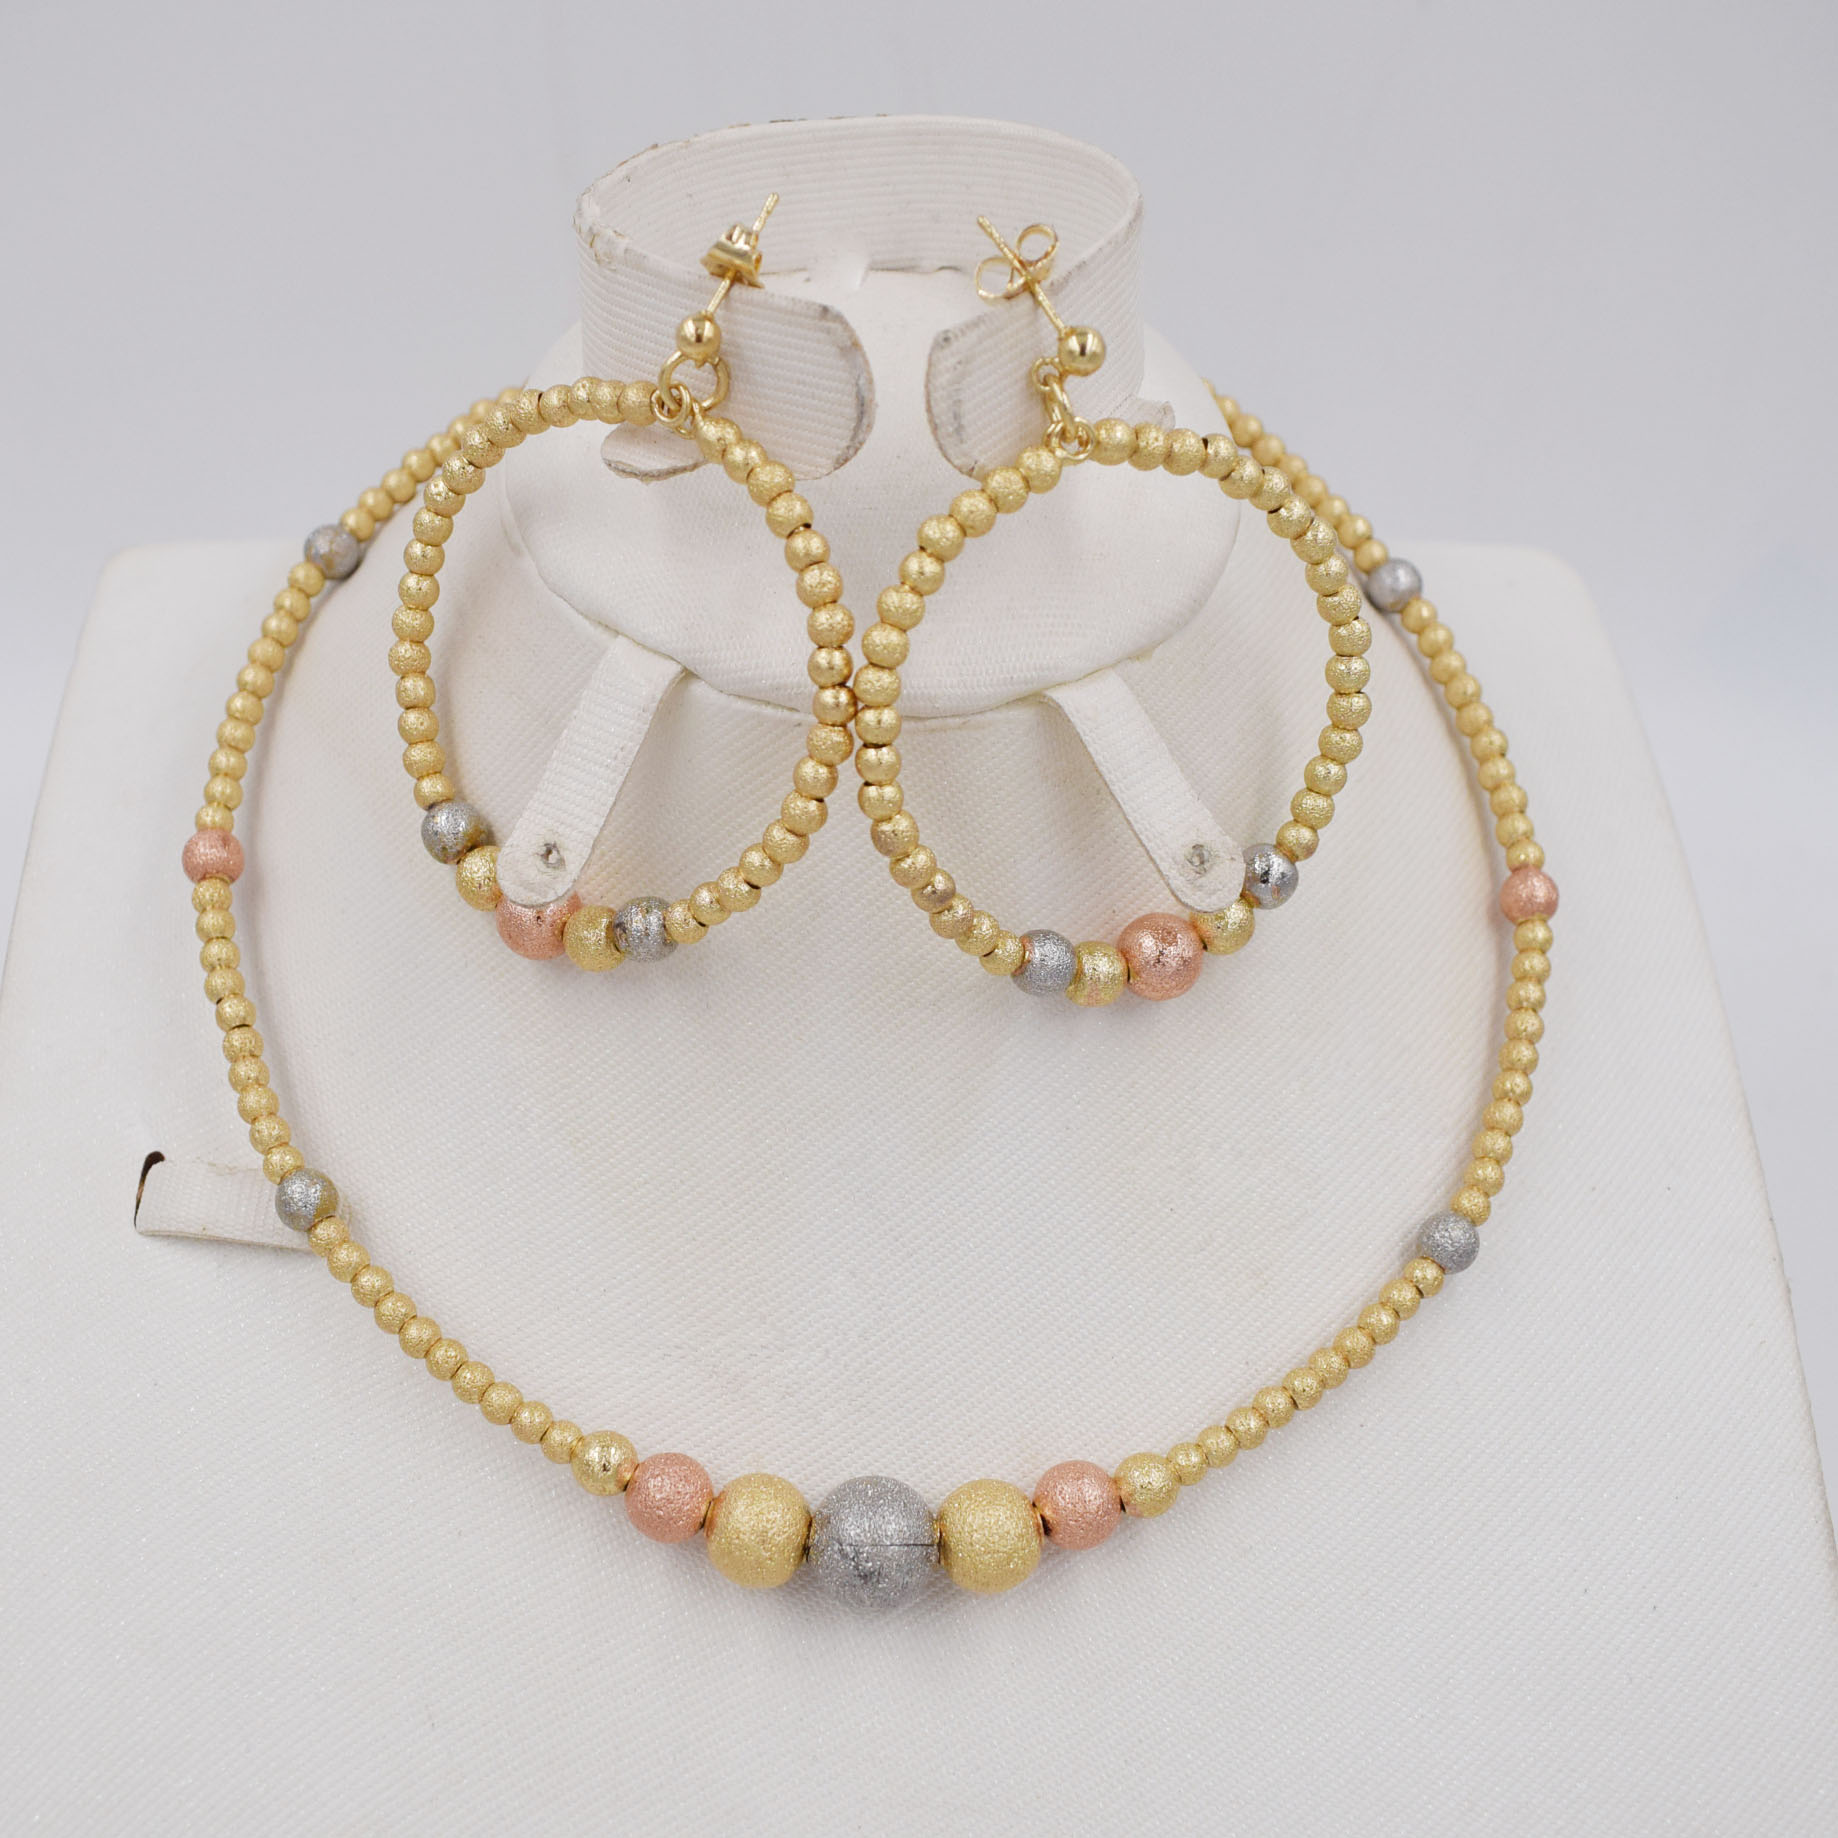 New Vintage Jewelry Sets African Bead Beads Statement Necklace Earrings Bracelet Women Wedding Party Accessories